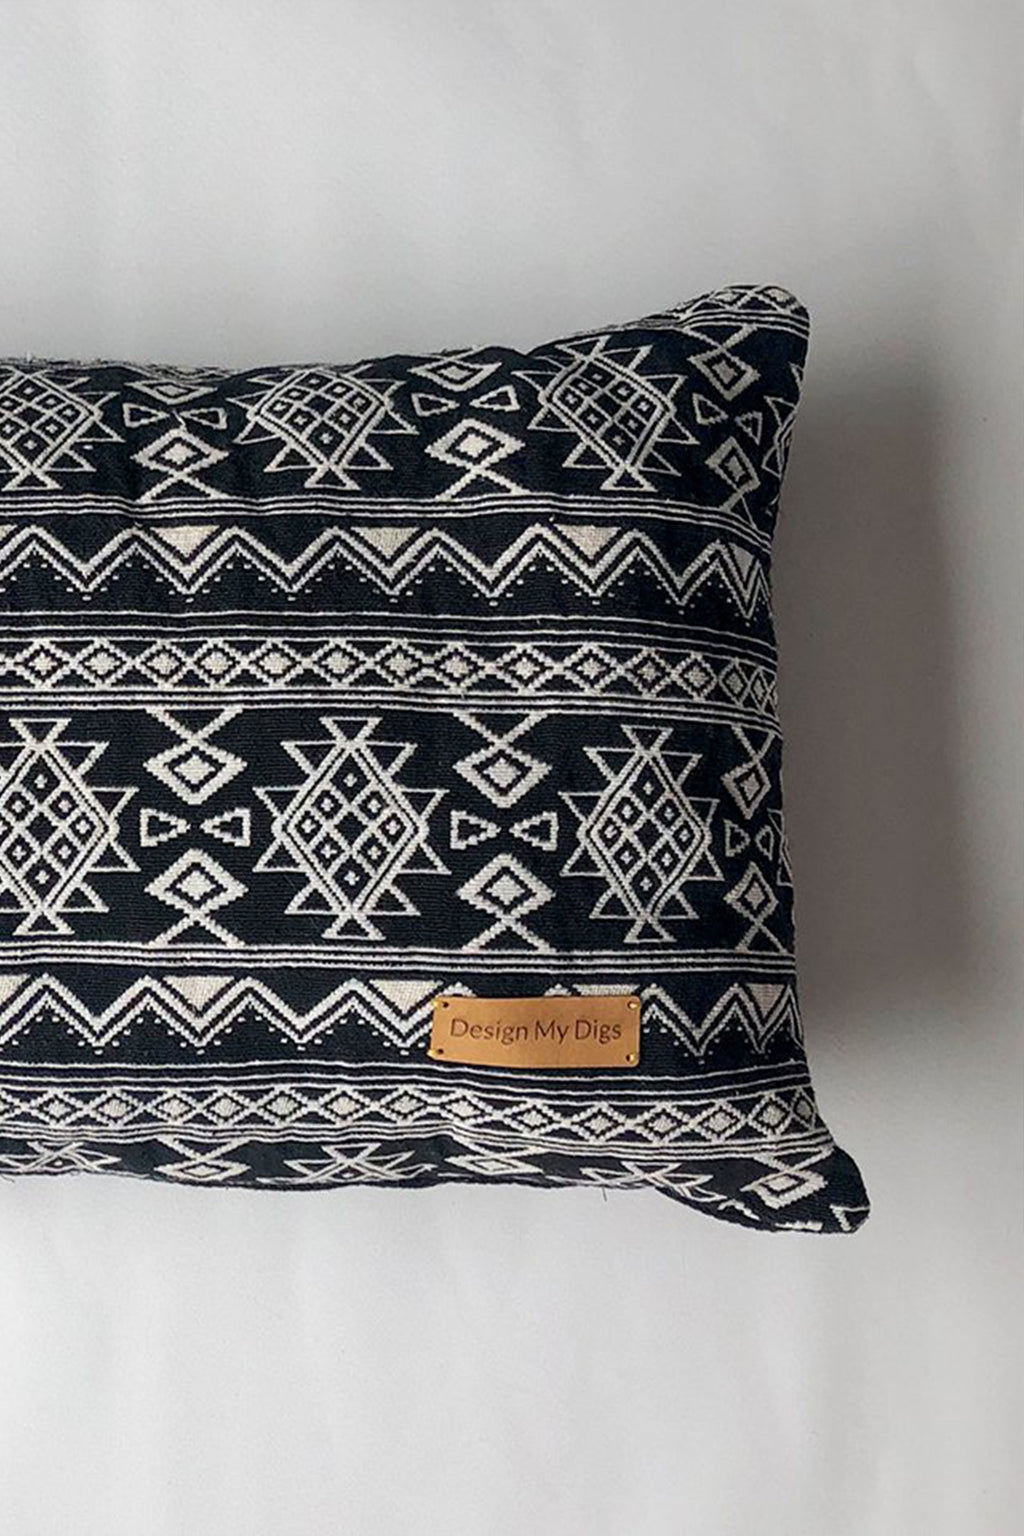 Black Aztec Pillow - Design My Digs - Dog Beds and Dog Decor Online Australia